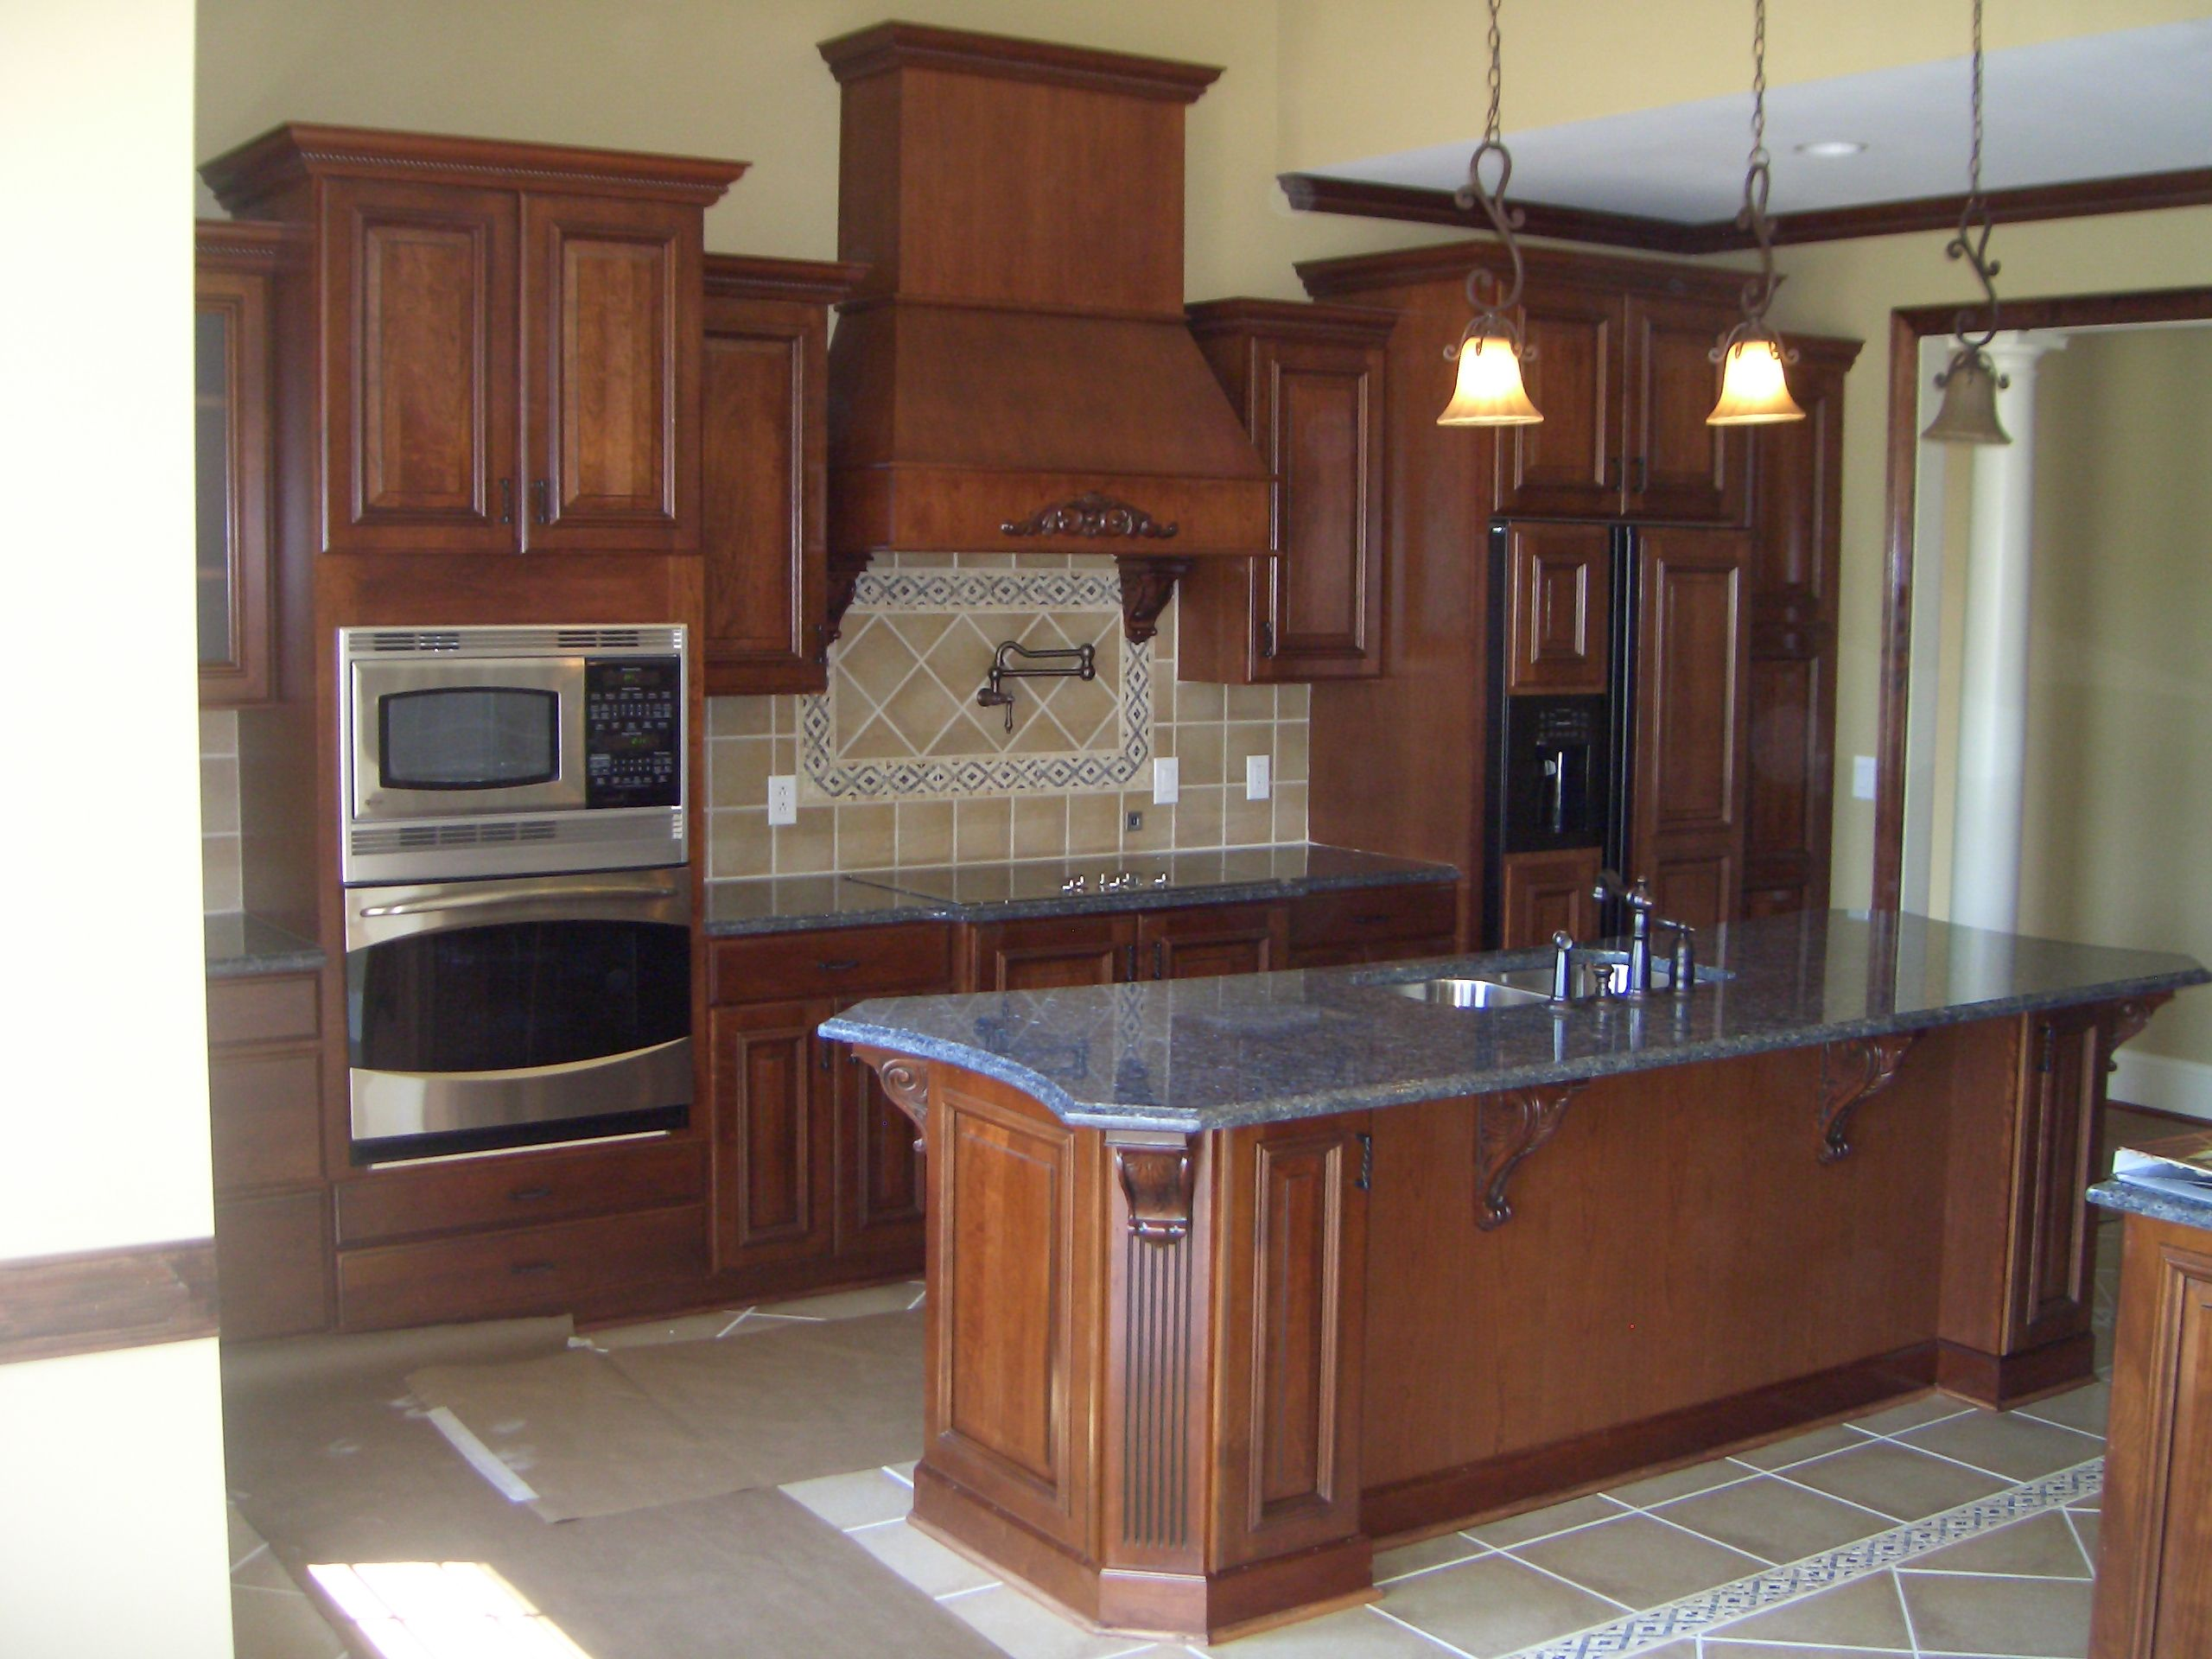 I Love How The Island Shape Turned Out, And The Blue Pearl Granite On The Glazed  Cherry Cabinets Looks Awesome!